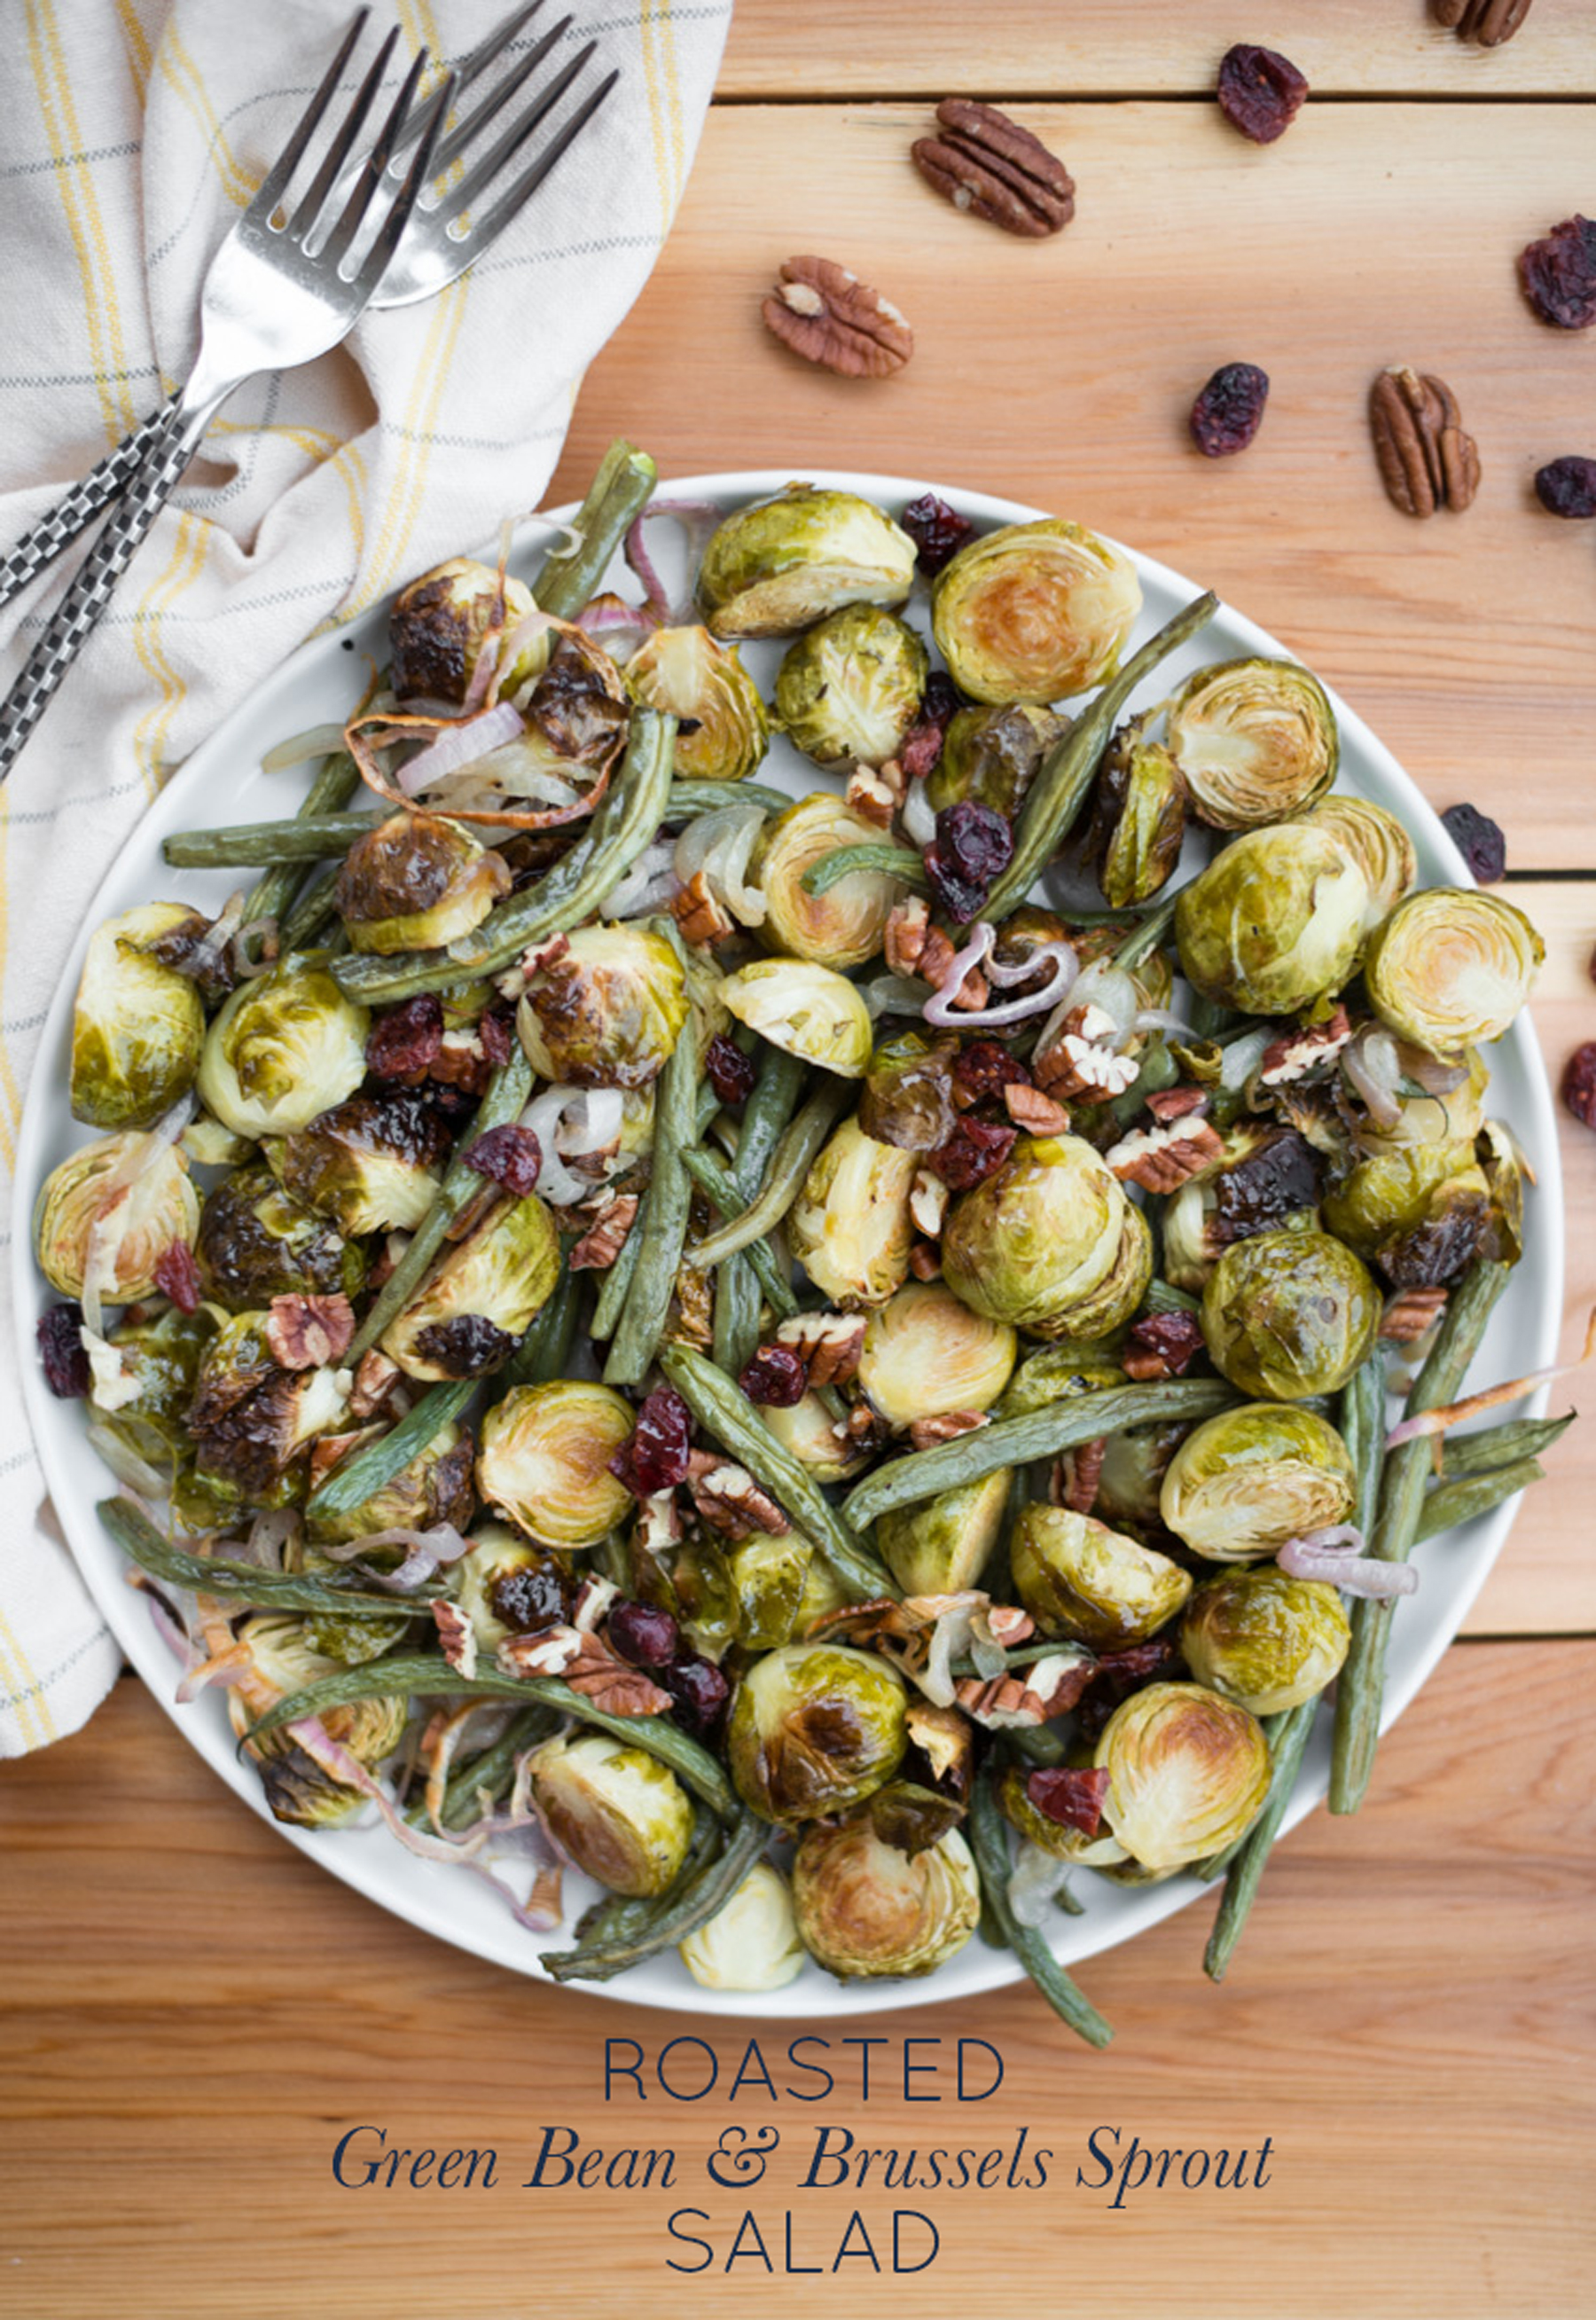 A simple, warming, autumn salad, Roasted Green Bean & Brussels Sprout Salad is hearty, nourishing, and packed with flavor. The perfect side for Thanksgiving dinner or any night of the week!